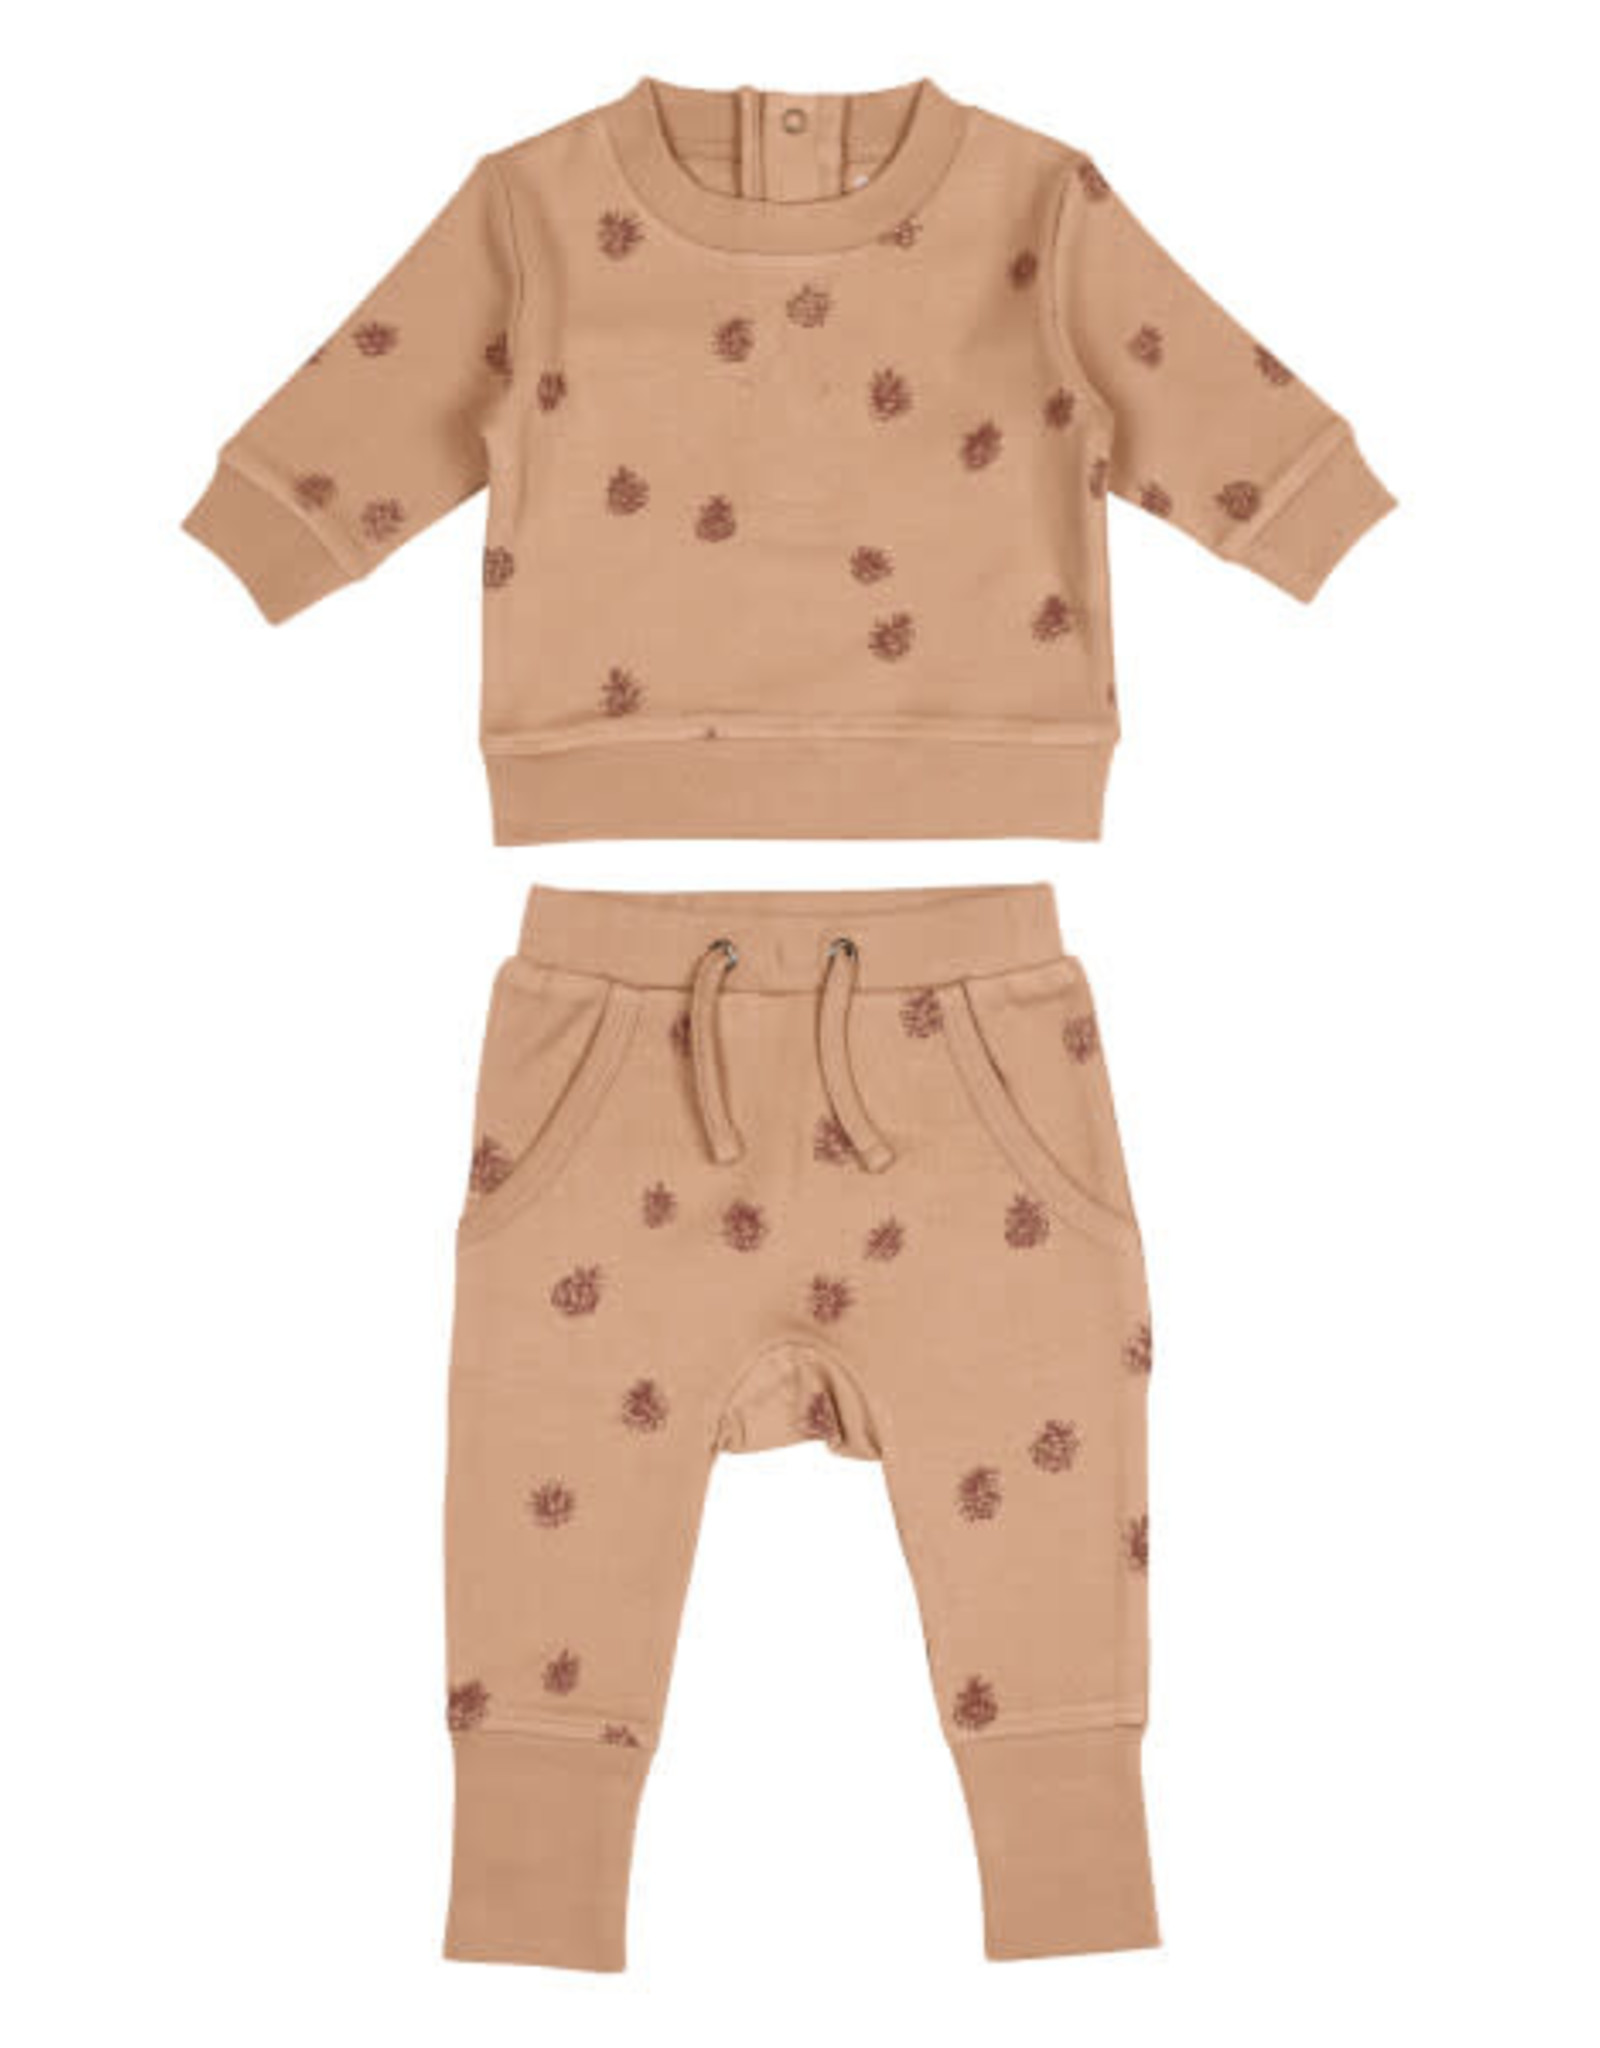 L'oved Baby Baby Nutmeg Sweatshirt & Jogger Set with Pinecone Print